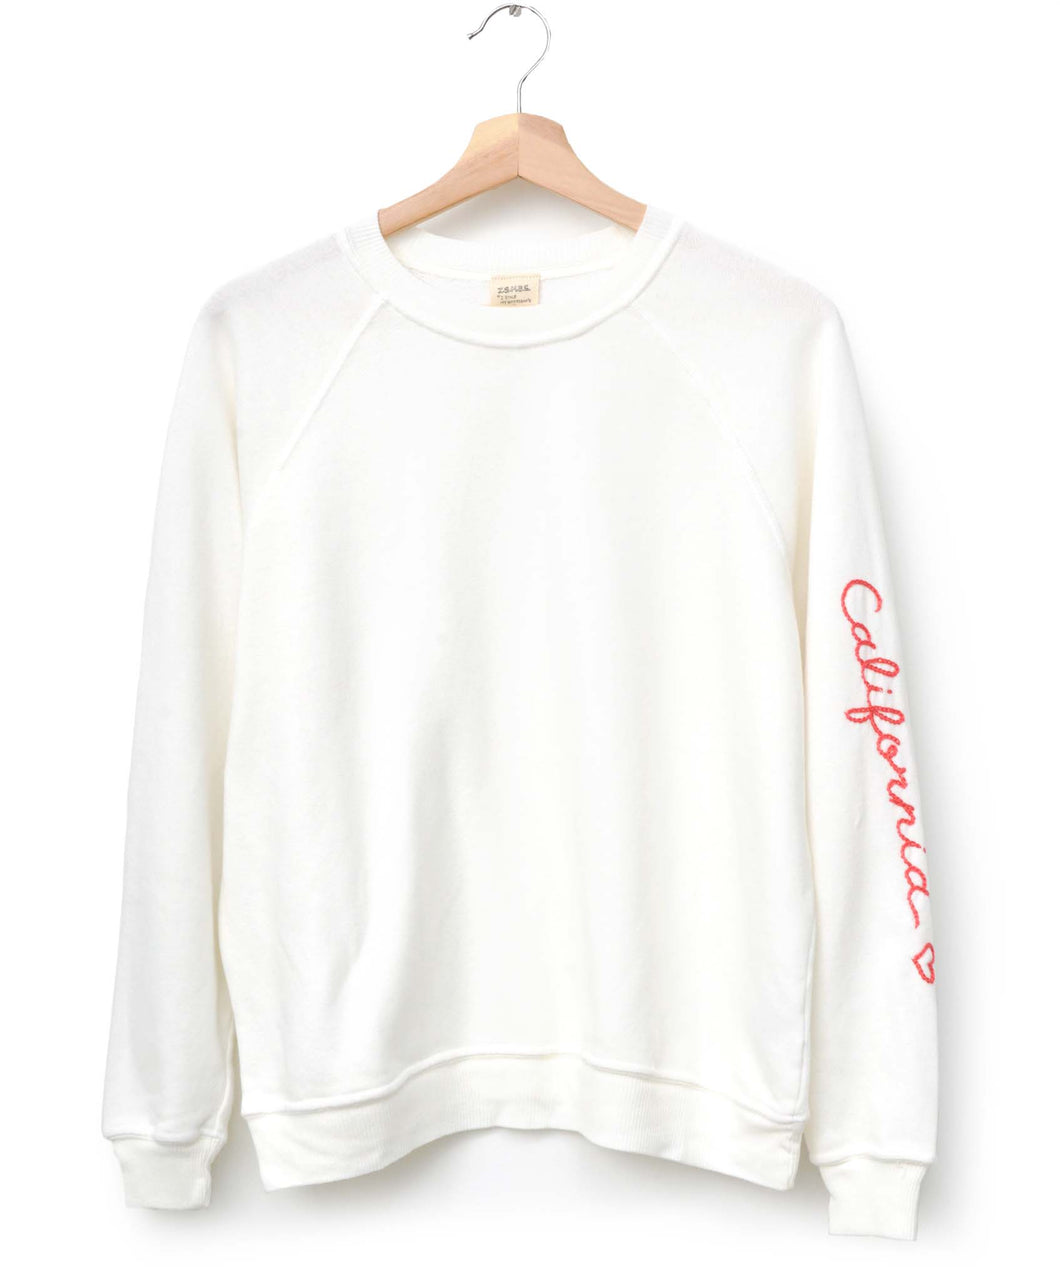 Neon California ❤️ on Sleeve Sweatshirt - Off White